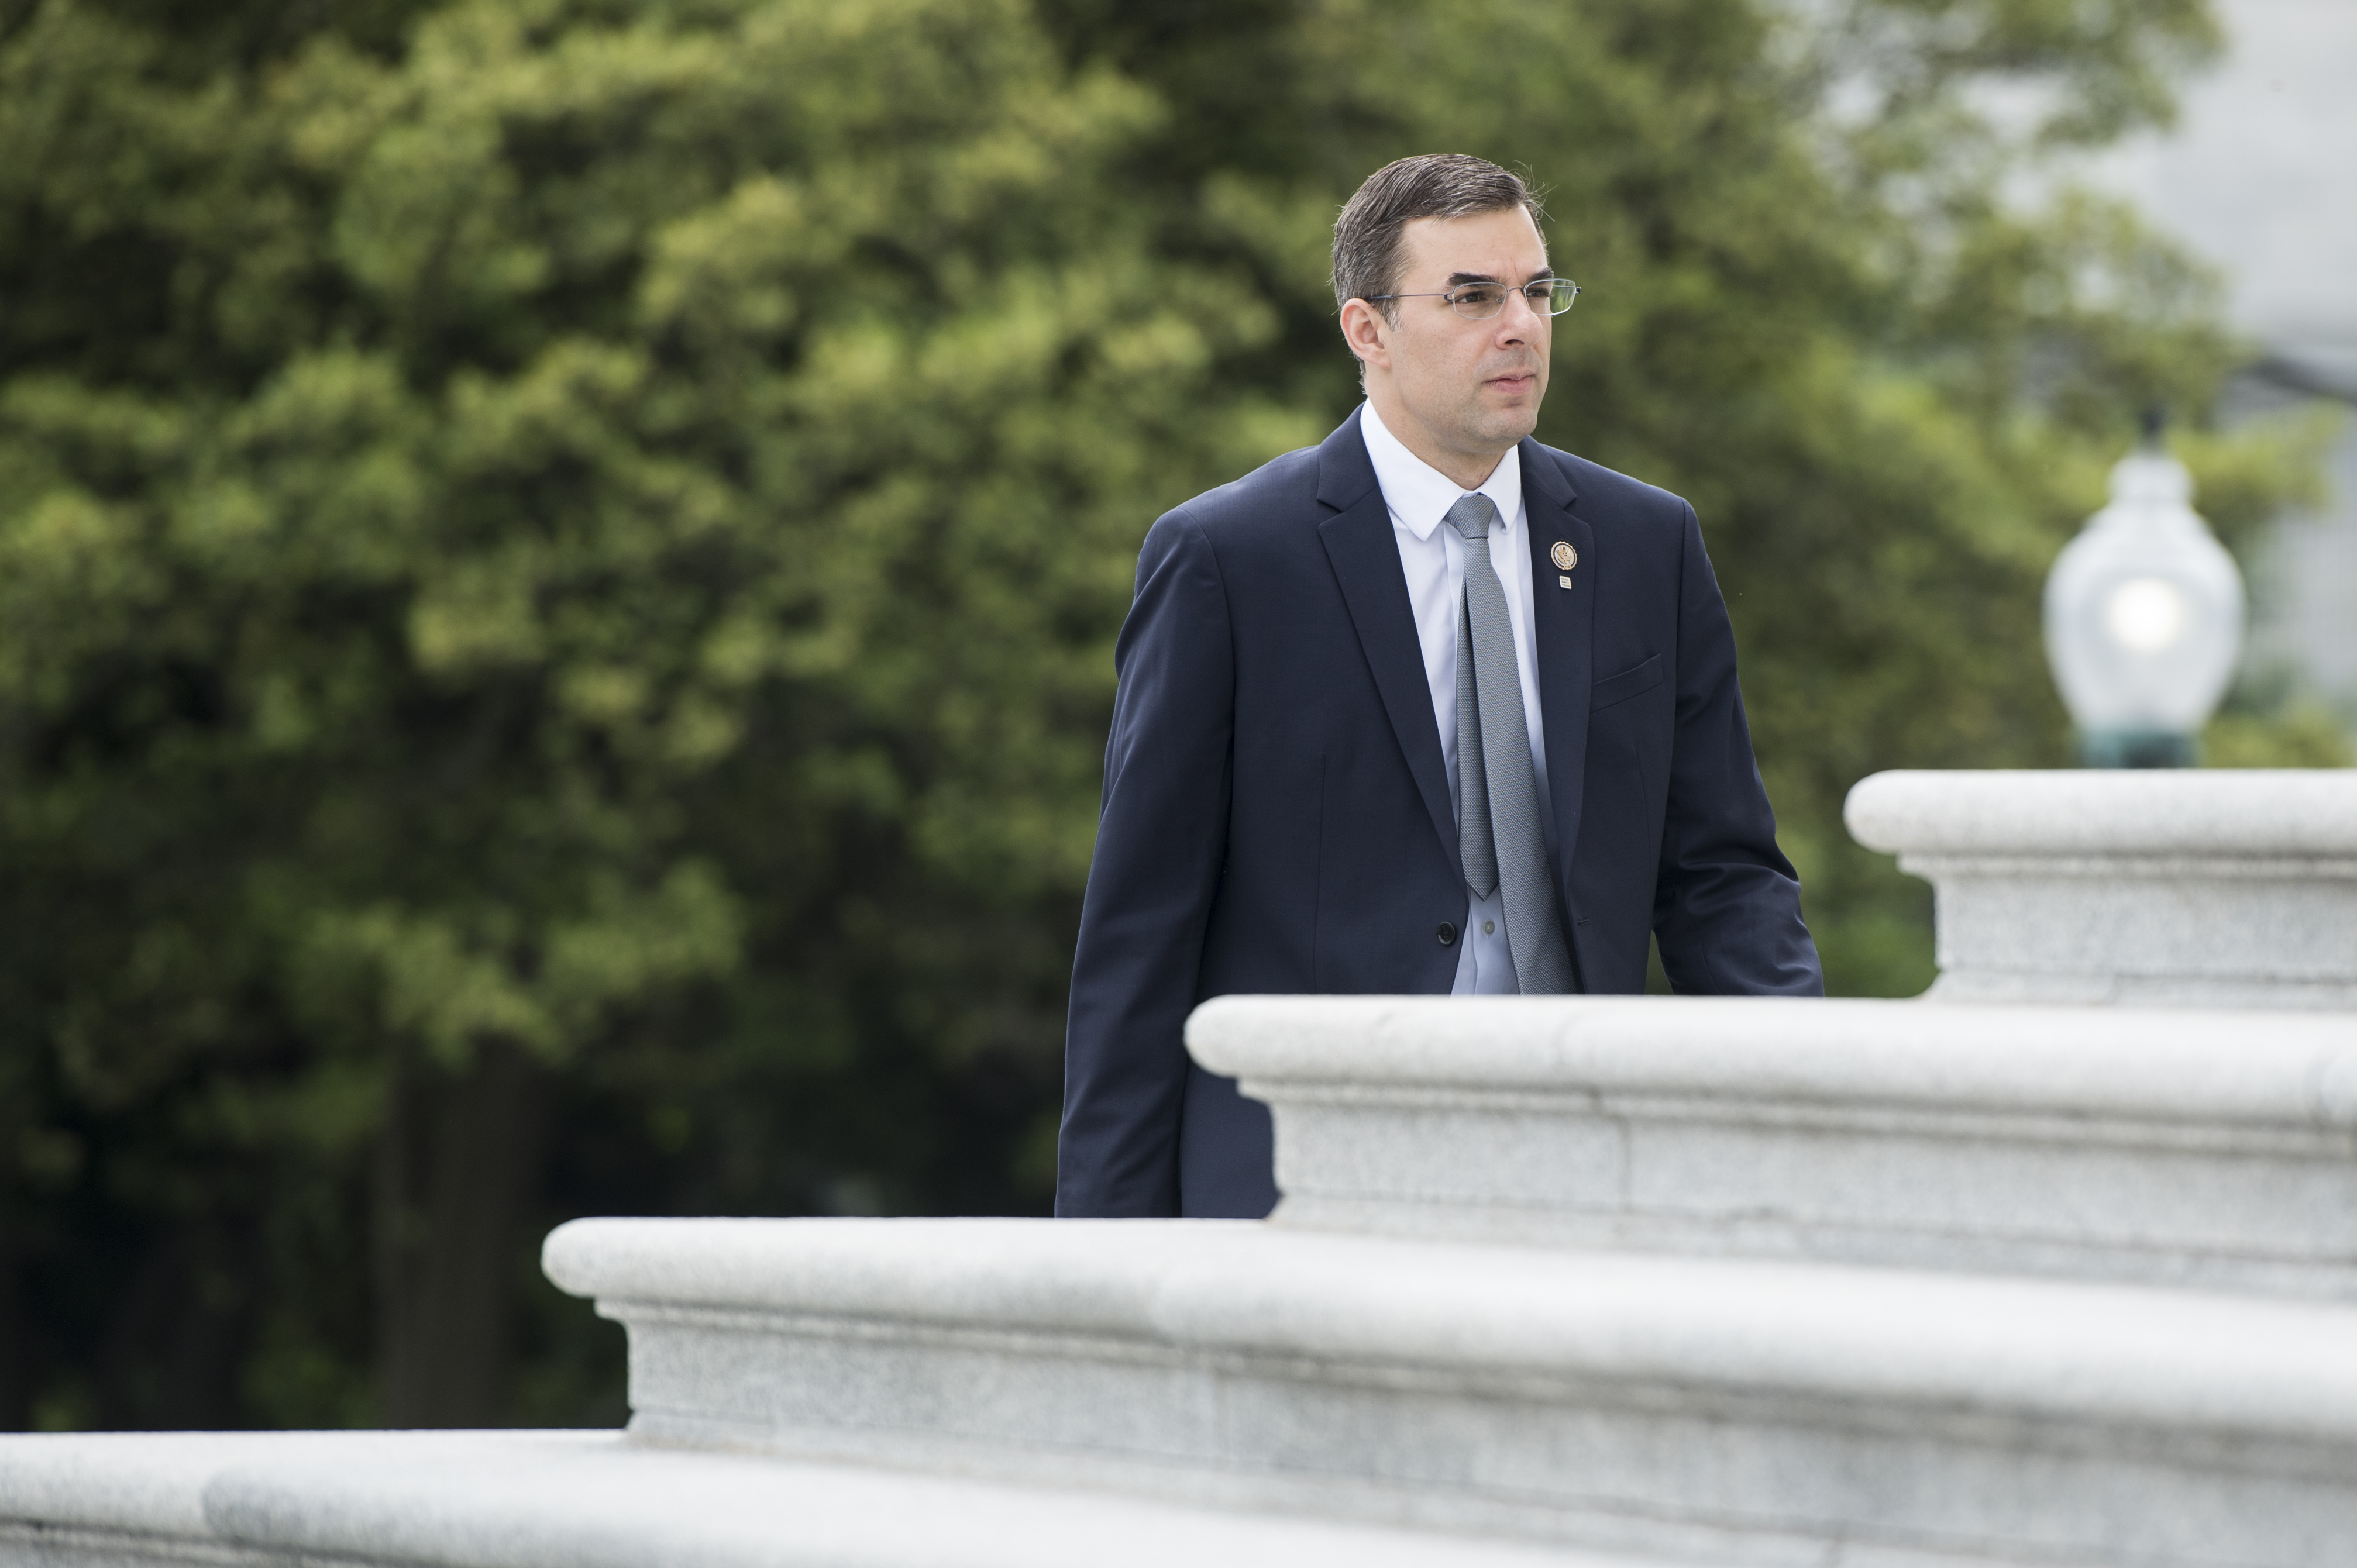 Rep. Justin Amash becomes the first Republican in Congress to call Trump's conduct impeachable